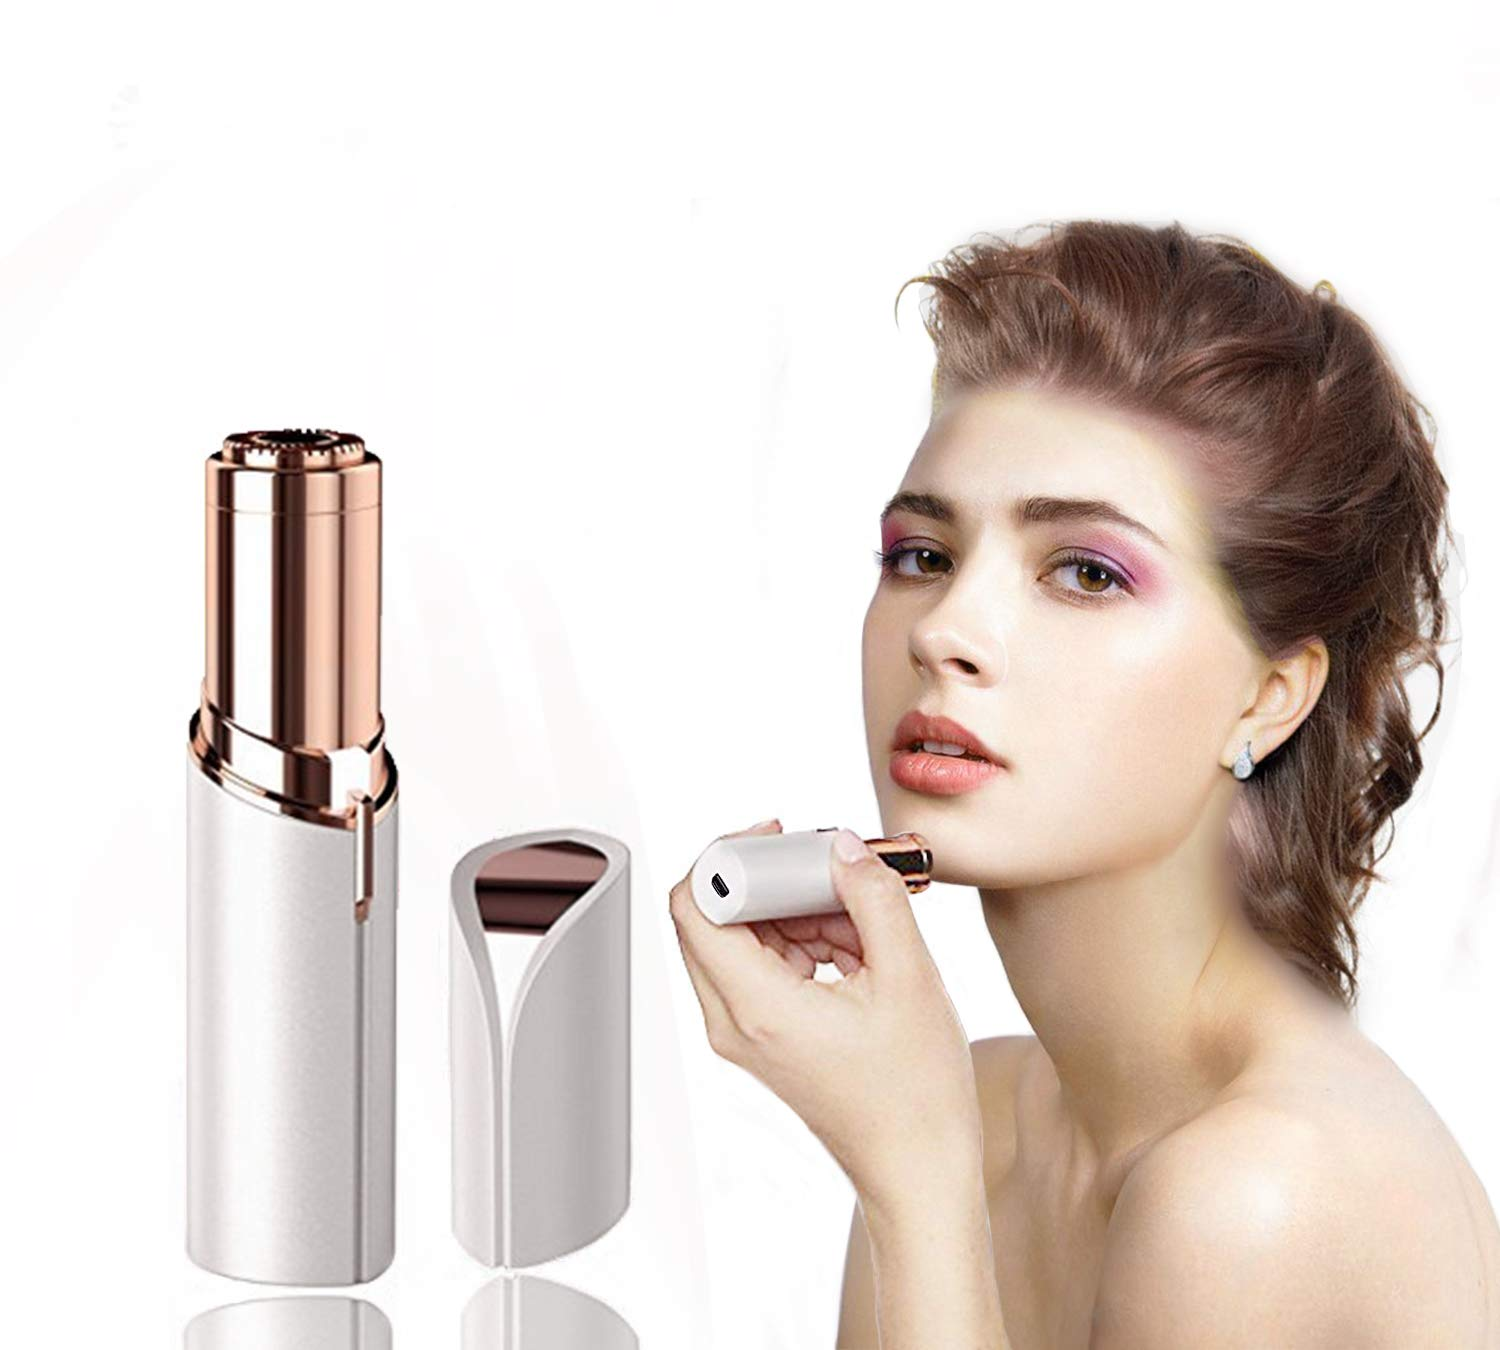 Women's Painless Hair Facial Remover, Remove Hairs on the Upper Lip, Chin, Cheeks, Sideburns, Mini Portable Travel Size with LED Light By Verfanny,white by Verfanny (Image #1)